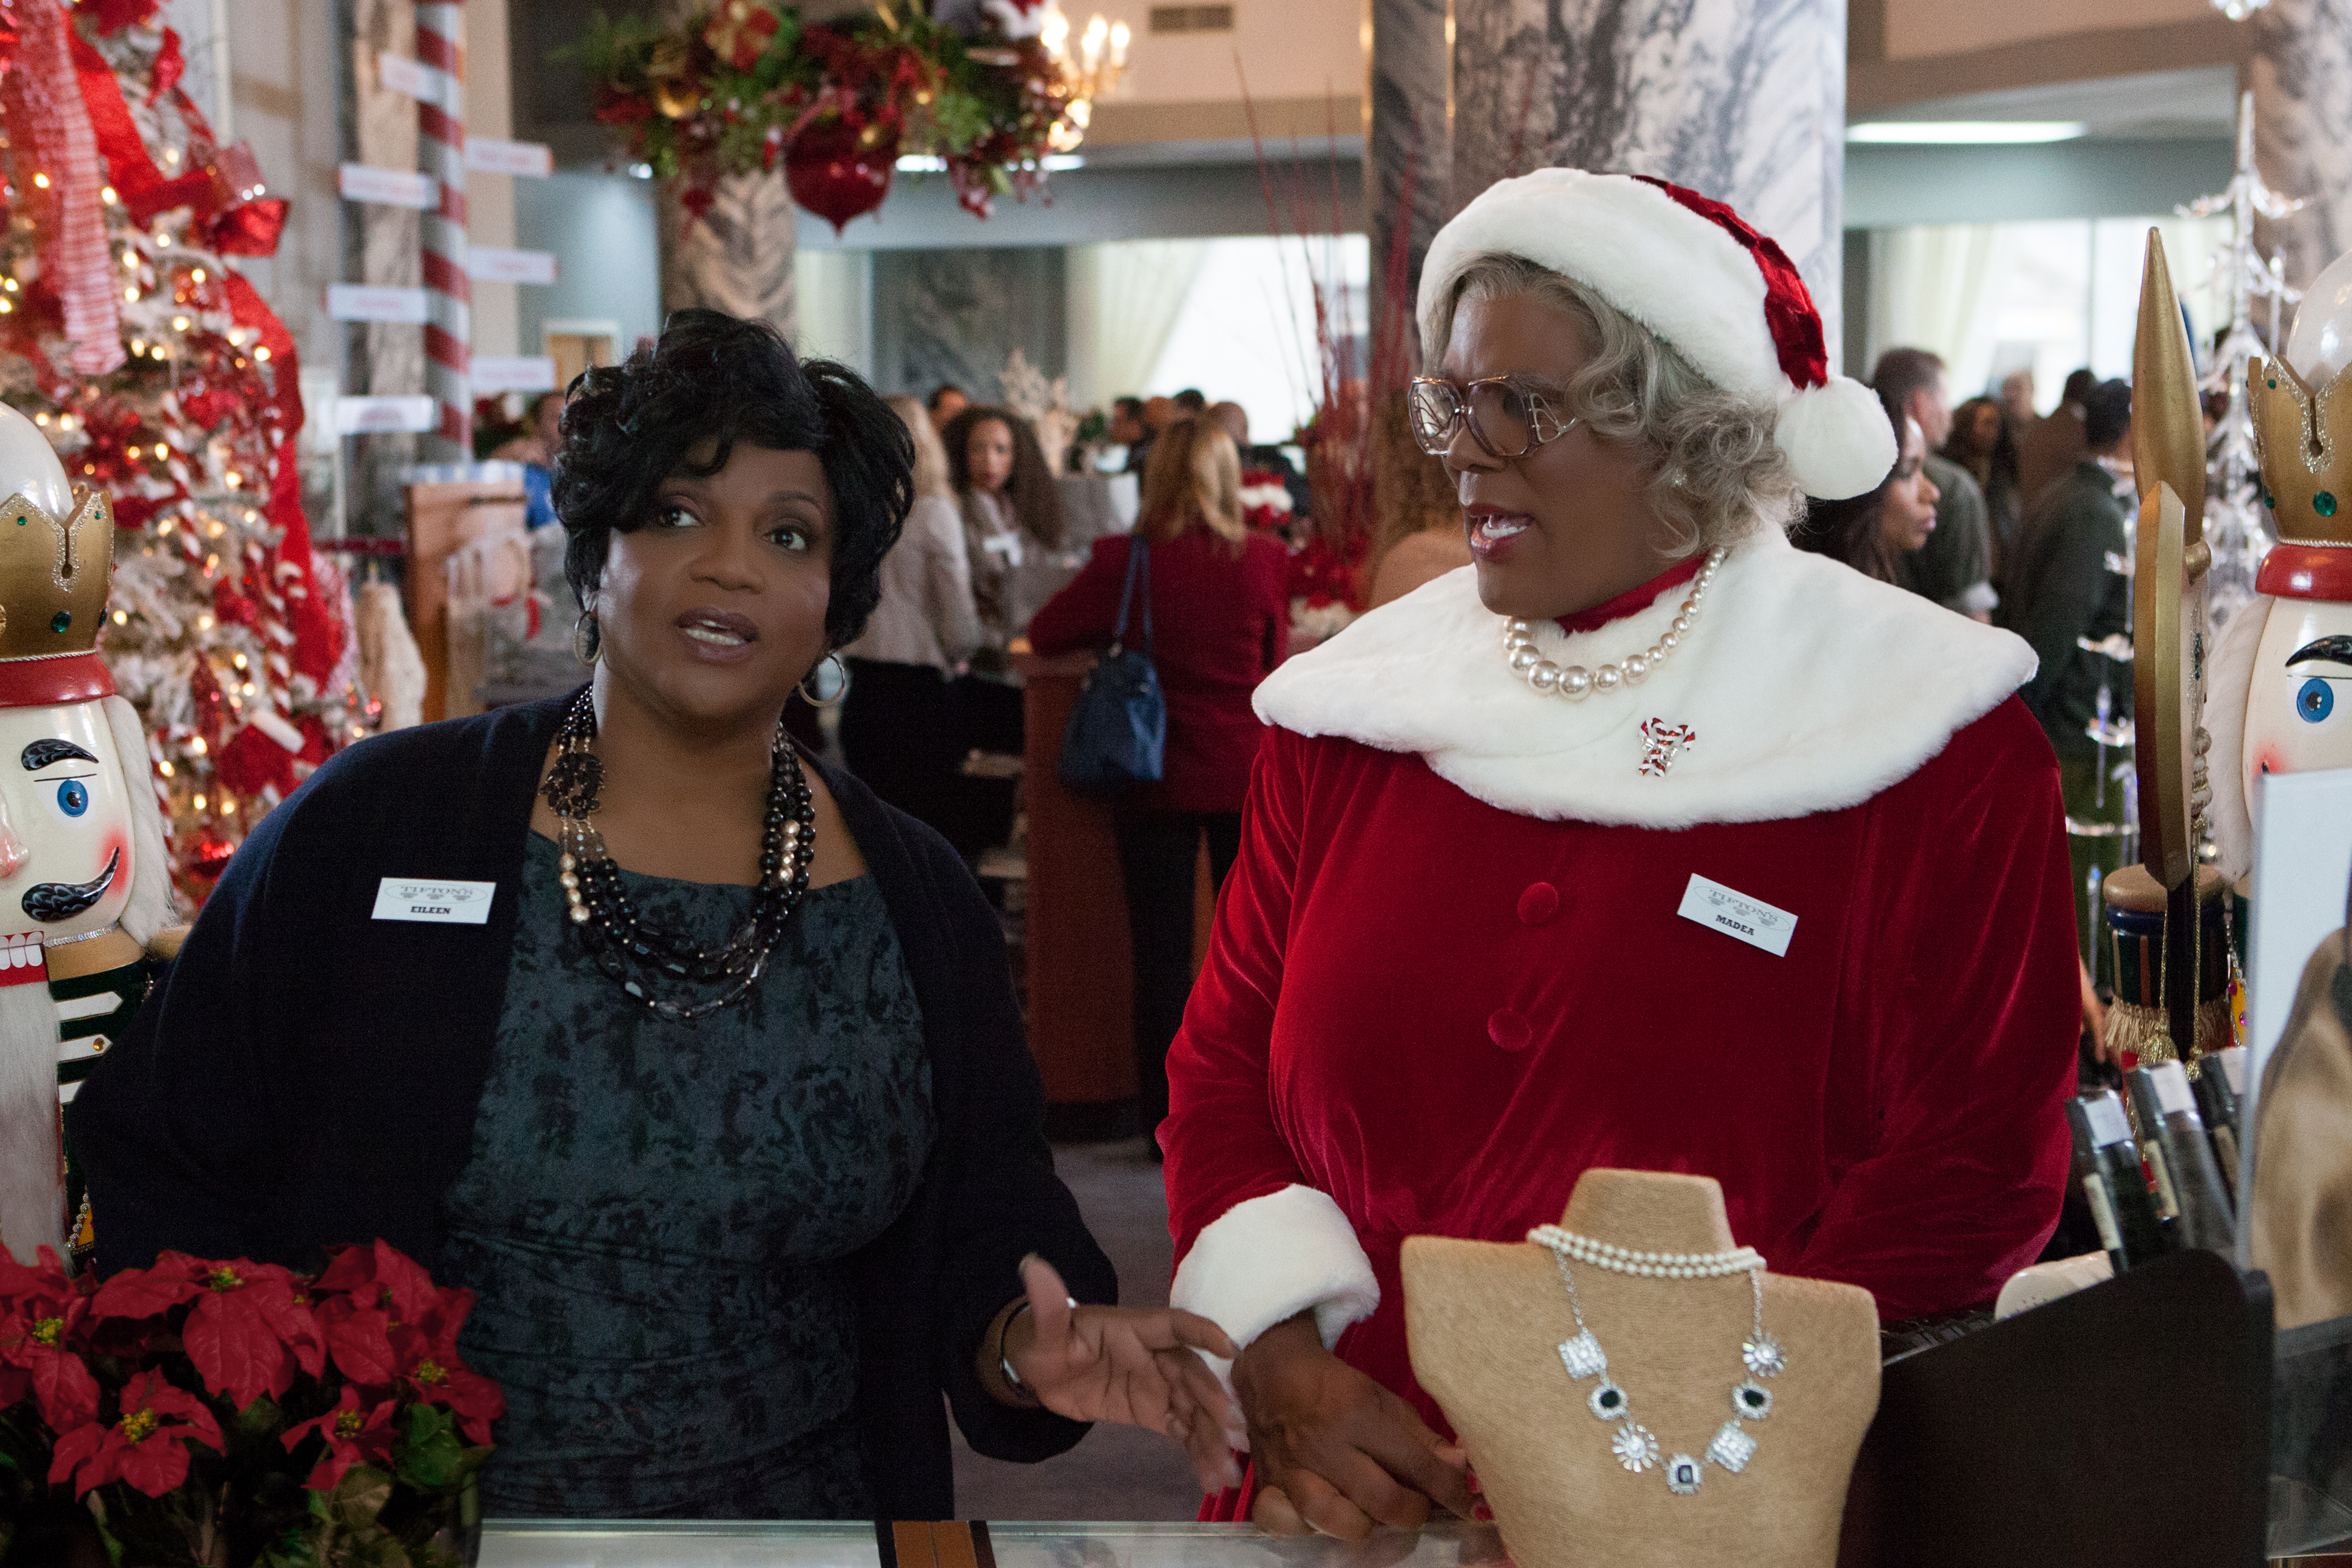 daefc154 039b 11e3 a4bf 005056b70bb8 Tyler Perry Celebrates A Madea Christmas with New Teaser Trailer